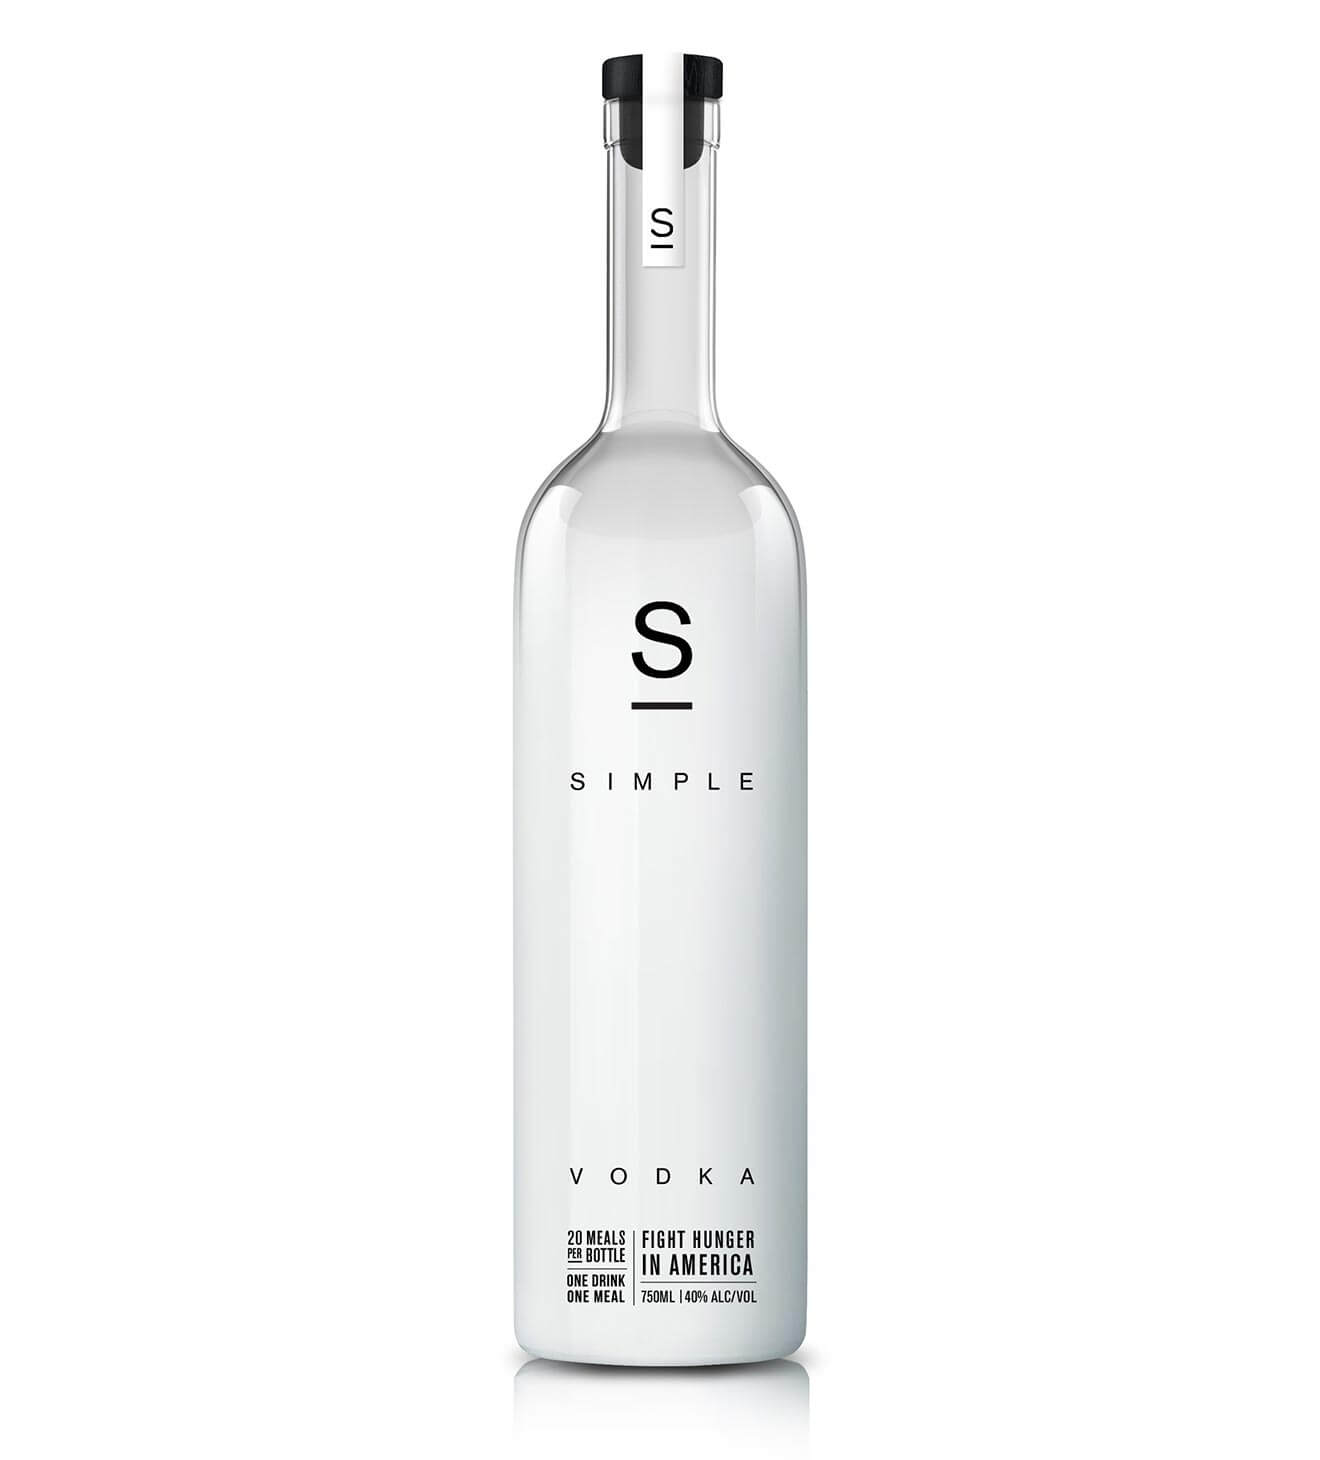 simple vodka bottle on white background